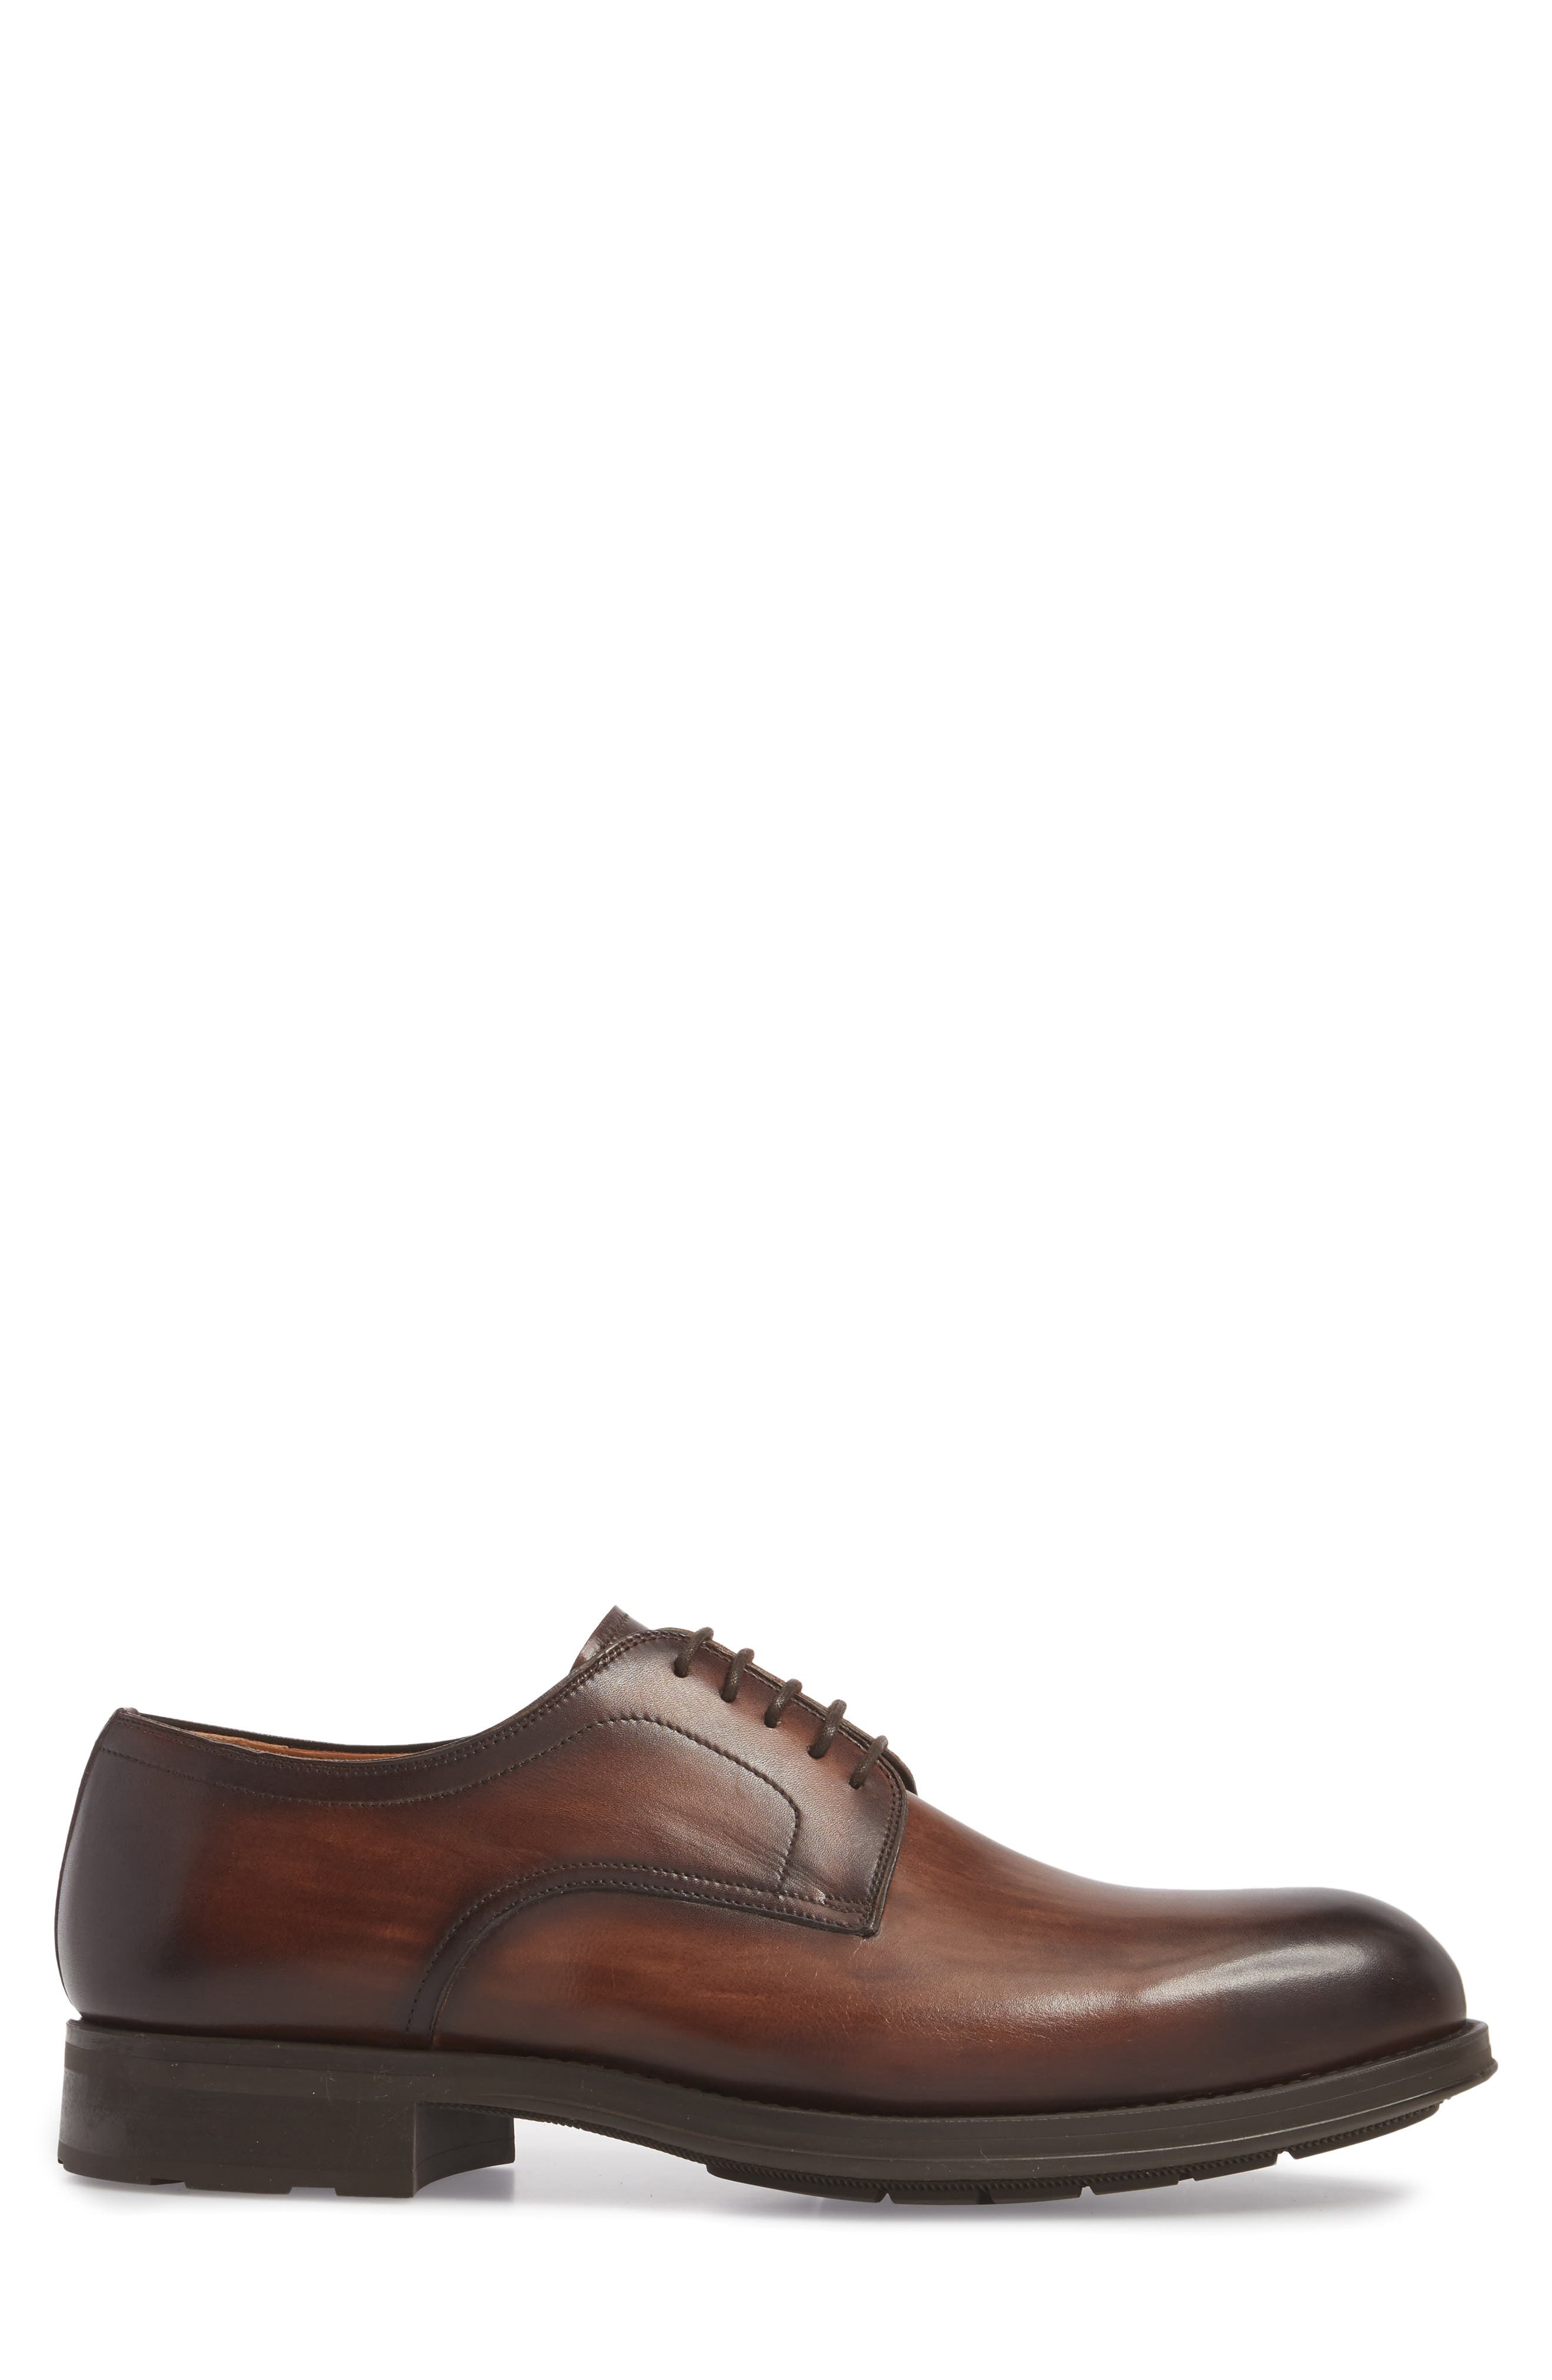 Solano Plain Toe Derby,                             Alternate thumbnail 3, color,                             BROWN LEATHER